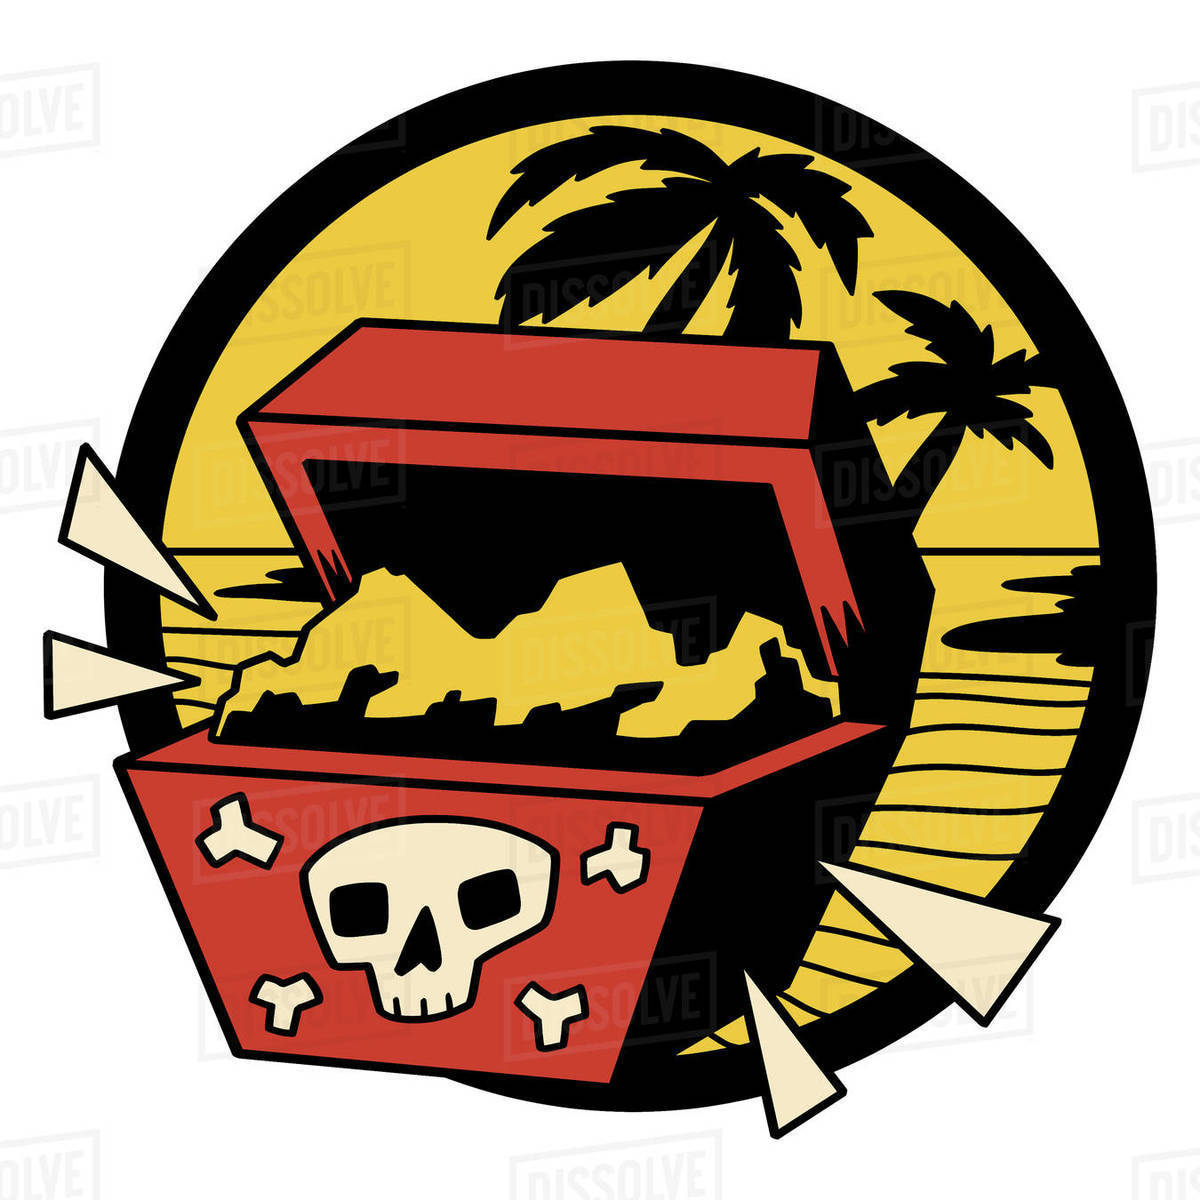 Illustration of pirate treasure box on an island against white background Royalty-free stock photo